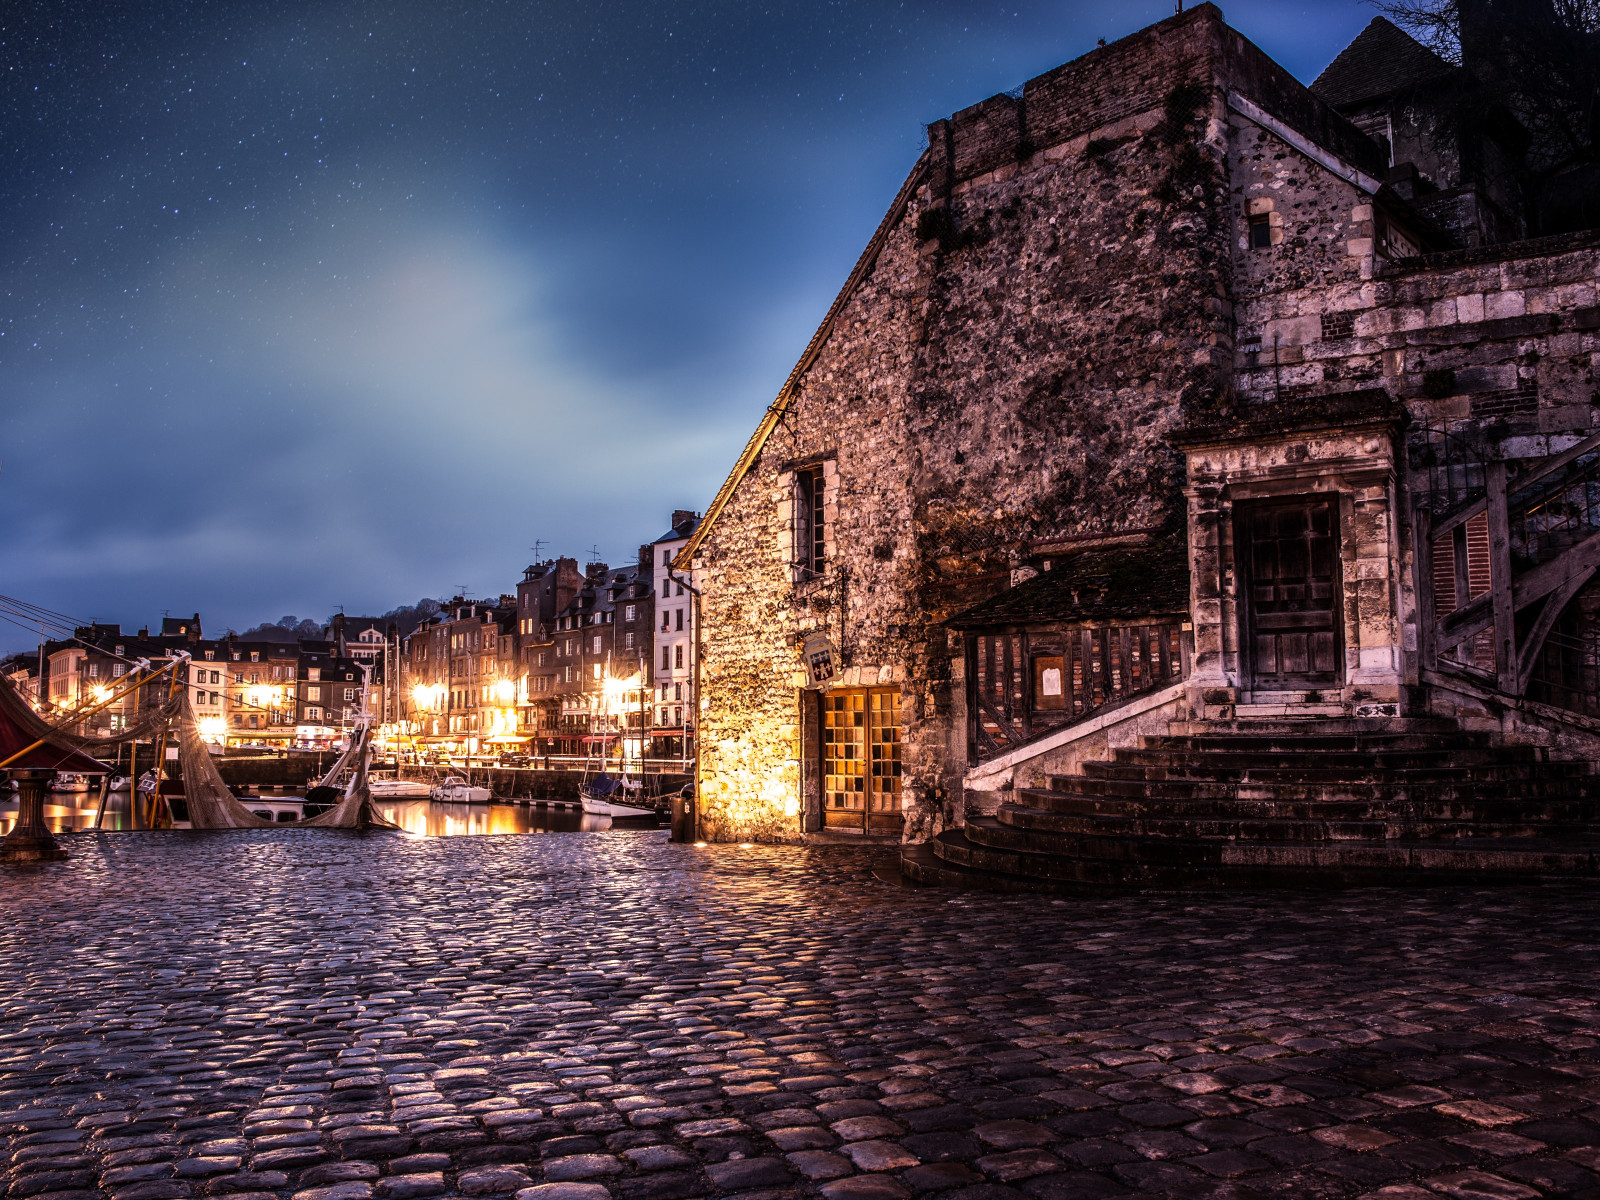 Night in Honfleur, France wallpaper 1600x1200